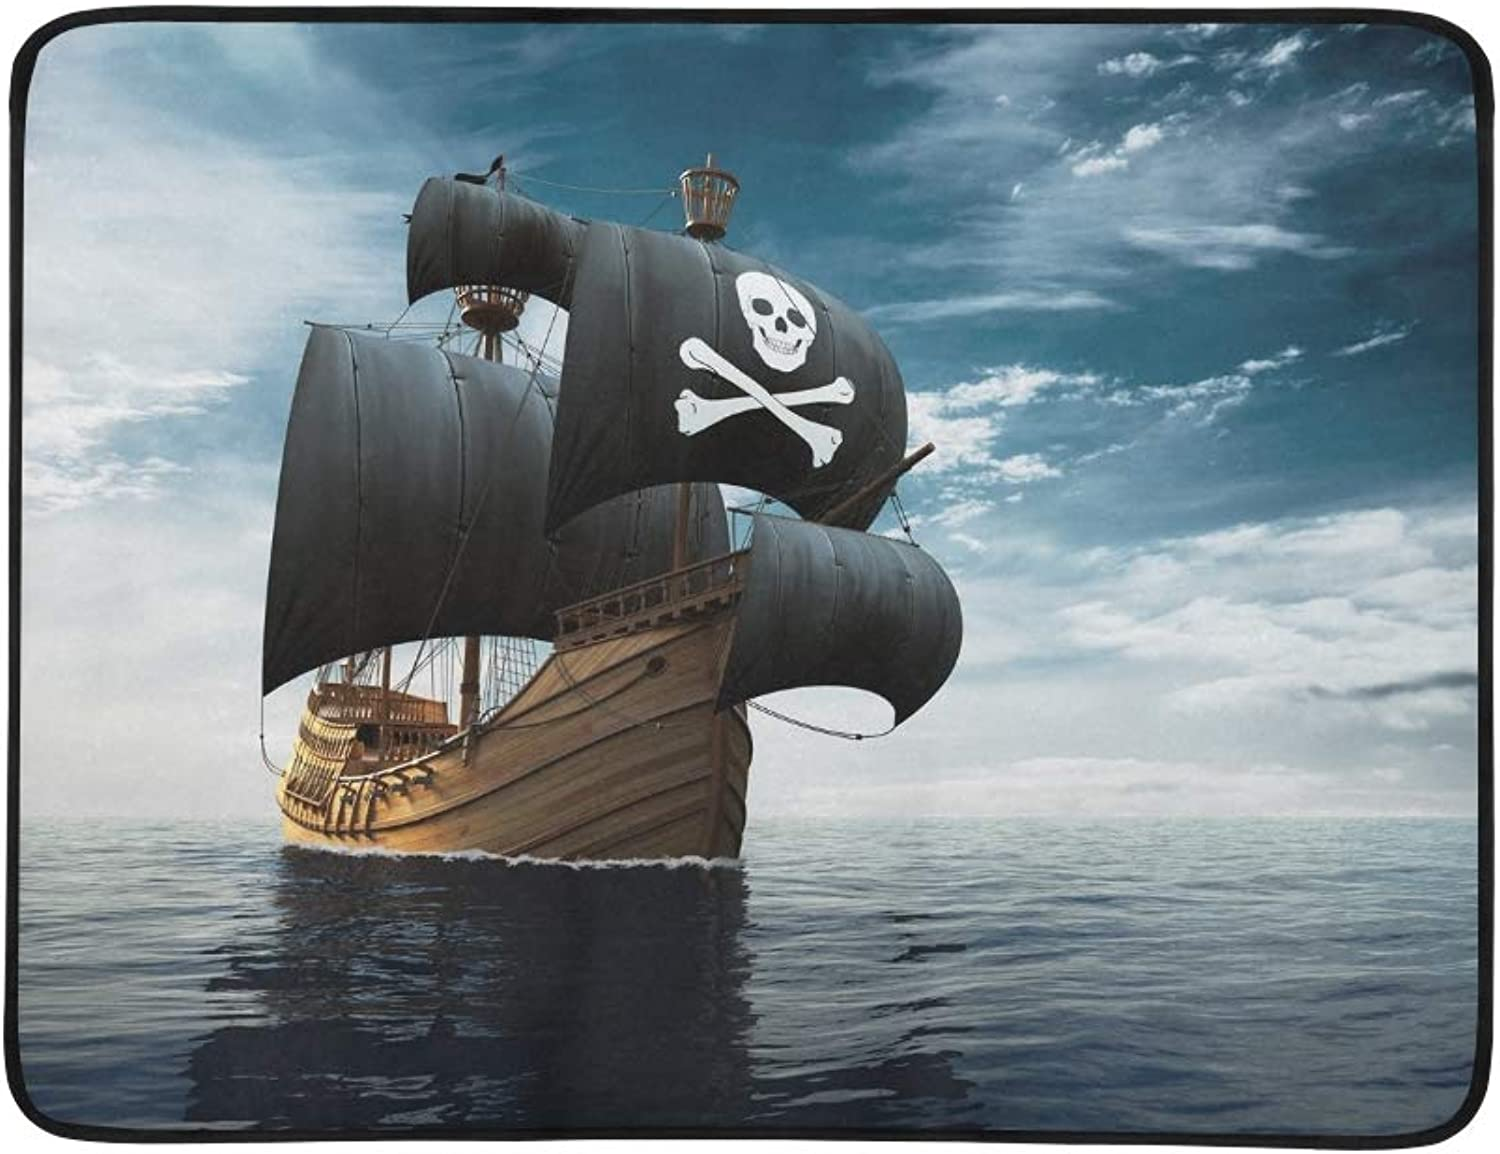 Pirate Ship On High Seas 3 D Portable and Foldable Blanket Mat 60x78 Inch Handy Mat for Camping Picnic Beach Indoor Outdoor Travel